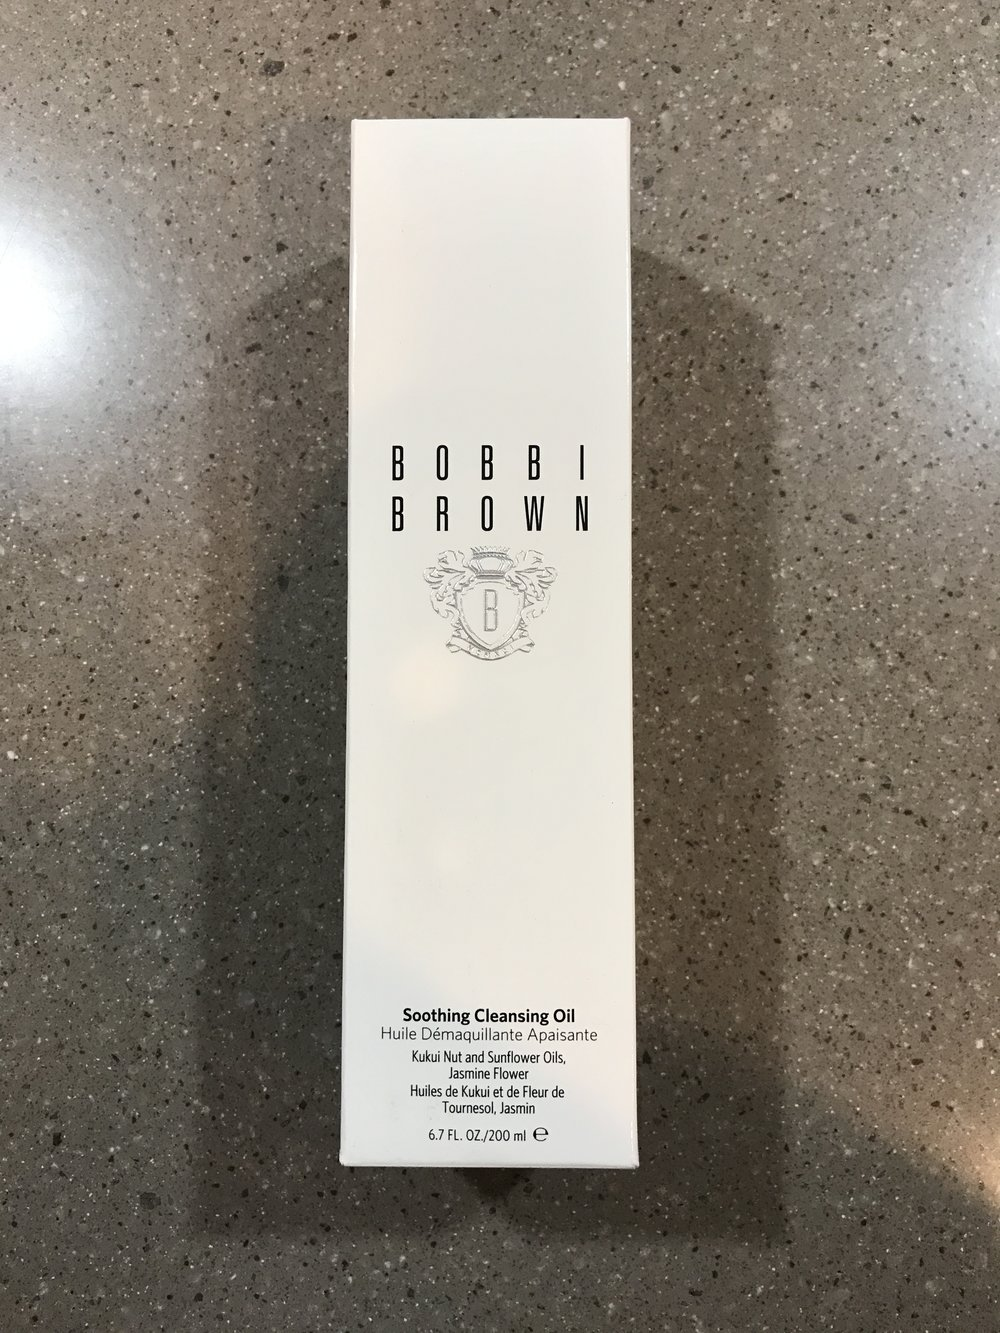 Bobbi Brown Soothing Cleansing Oil and Soothing Cleansing Milk Review